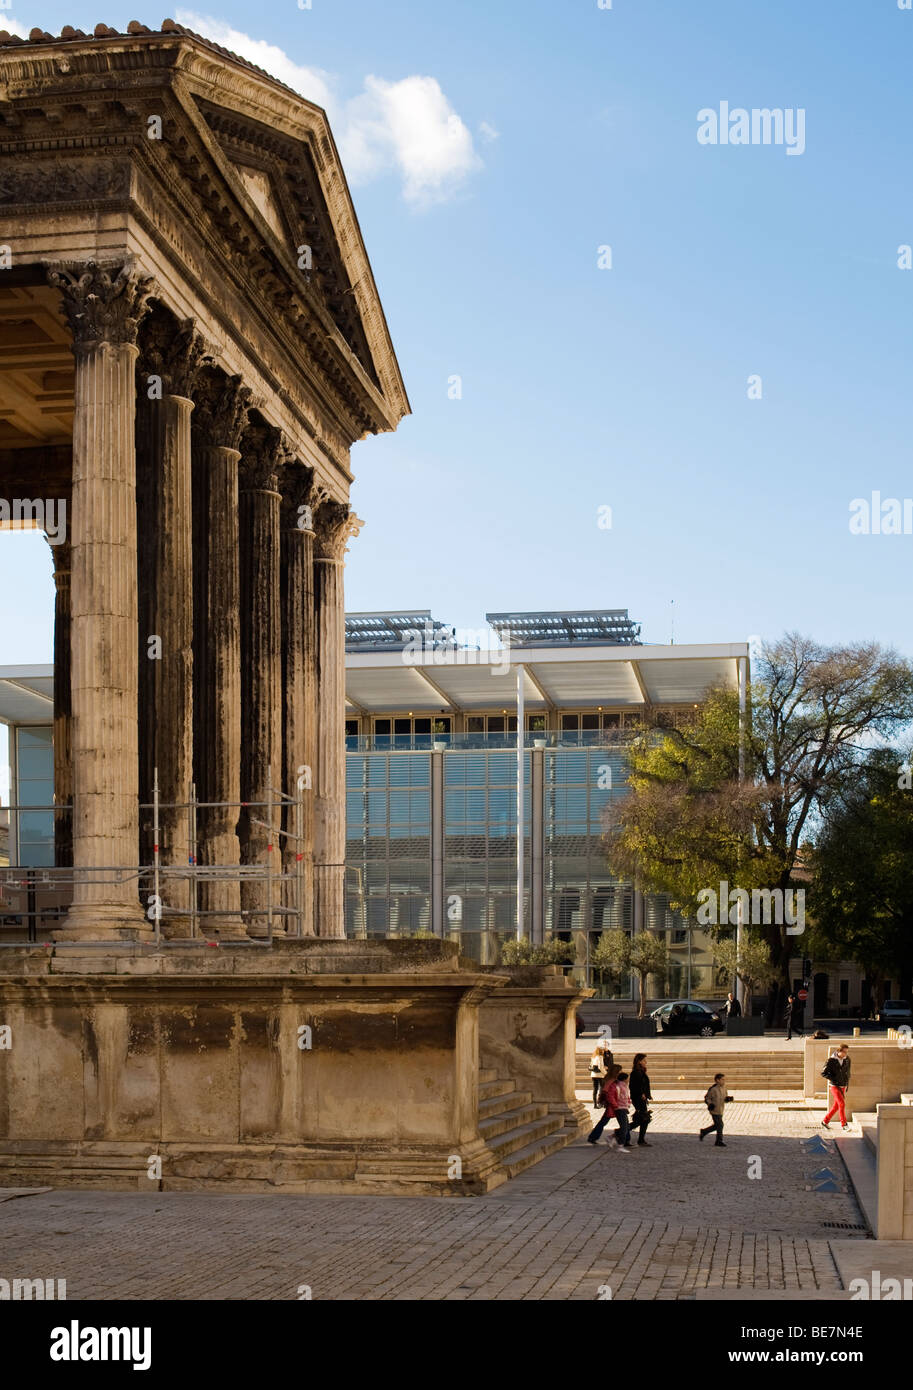 Maison carree an ancient roman temple in nimes france - Maison carree nimes ...